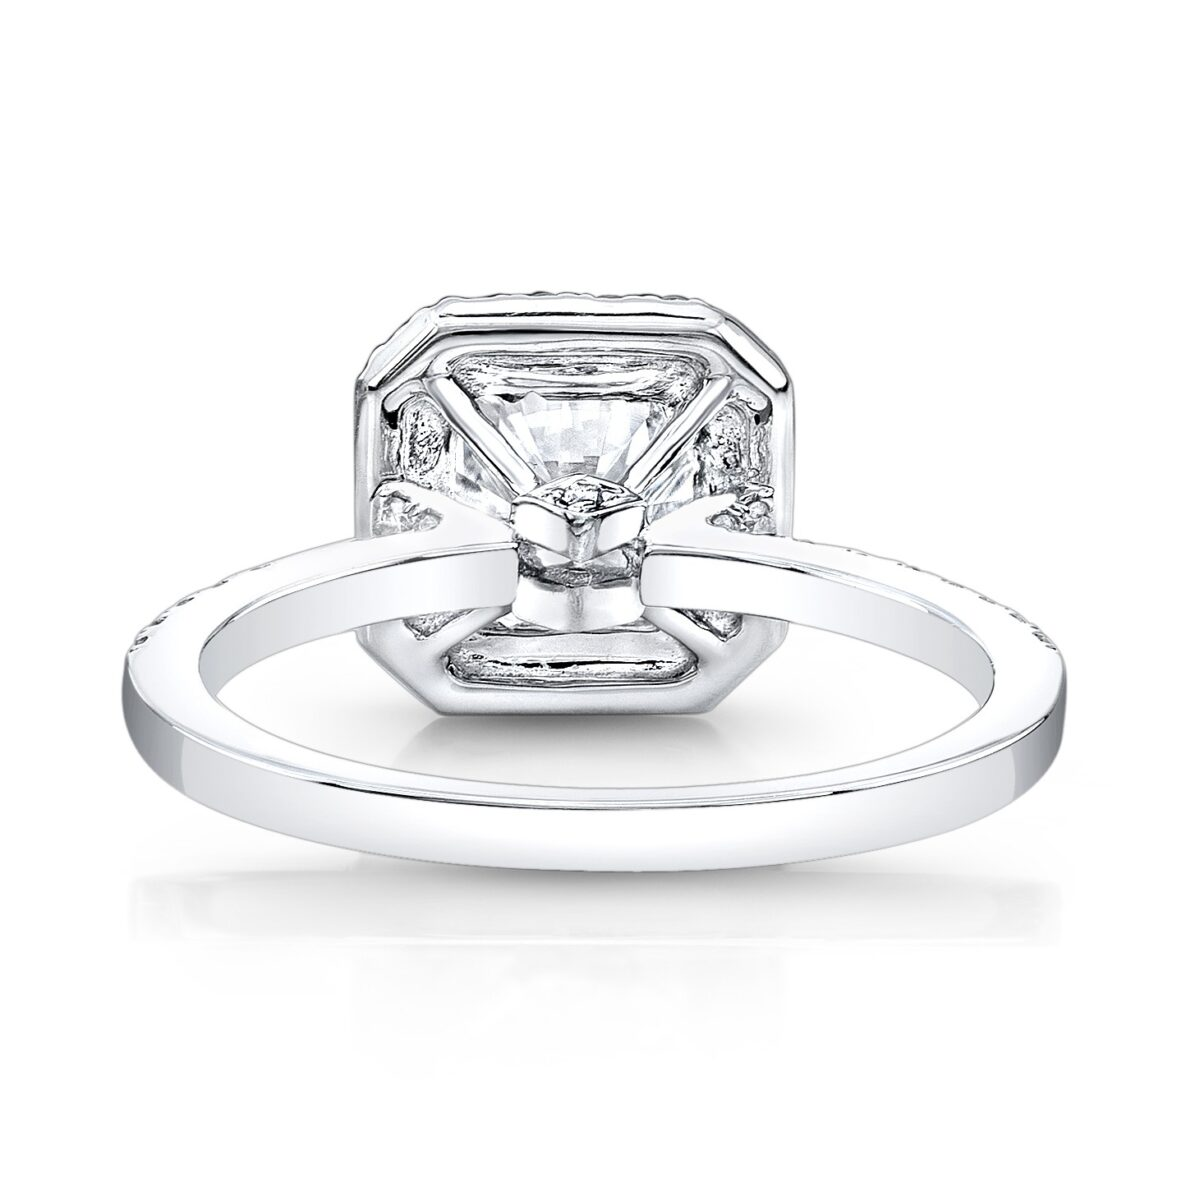 princess unique semi mount setting diamonds products halo img cut square ring engagement for stone rings carat center